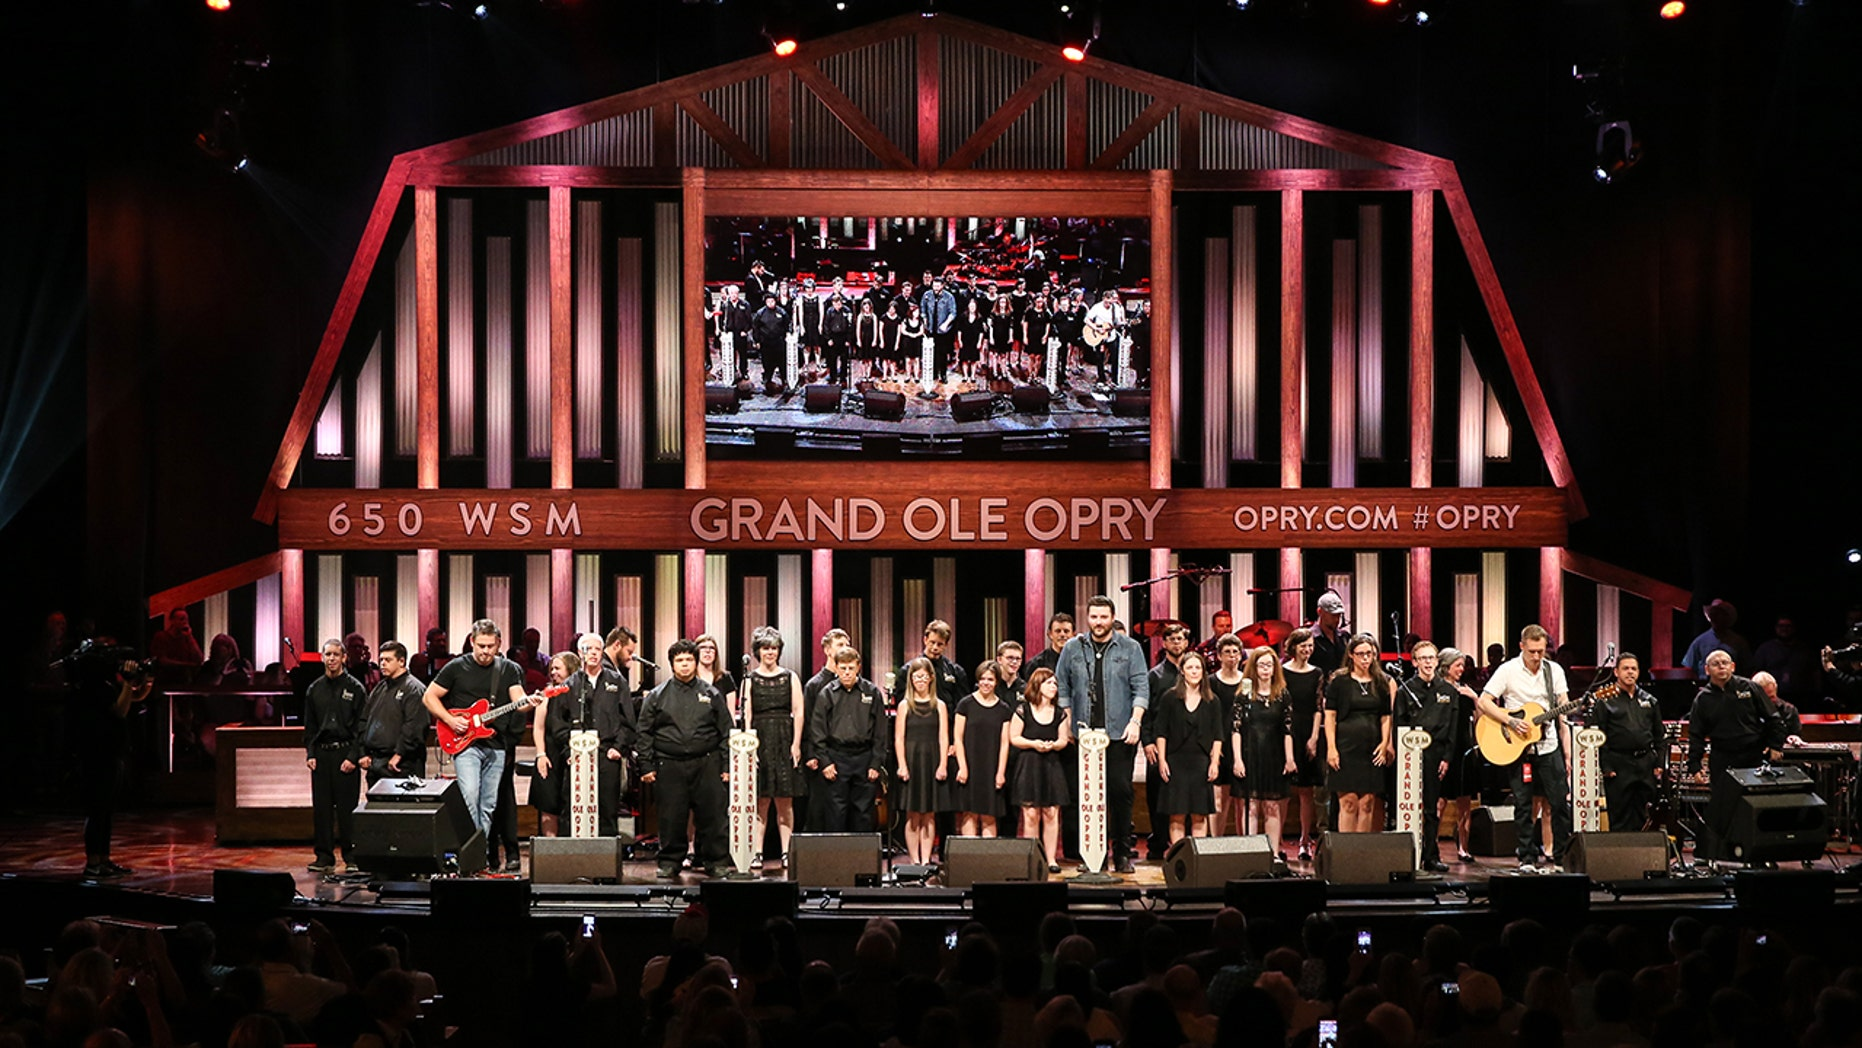 The Grand Ole Opry will help raise money for a fan battling cancer. Pictured is the ACM Lifting Lives music Campers joining Singer-songwriter Chris Young on stage during a Performance at Grand Ole Opry House on June 27, 2017 in Nashville, Tennessee.